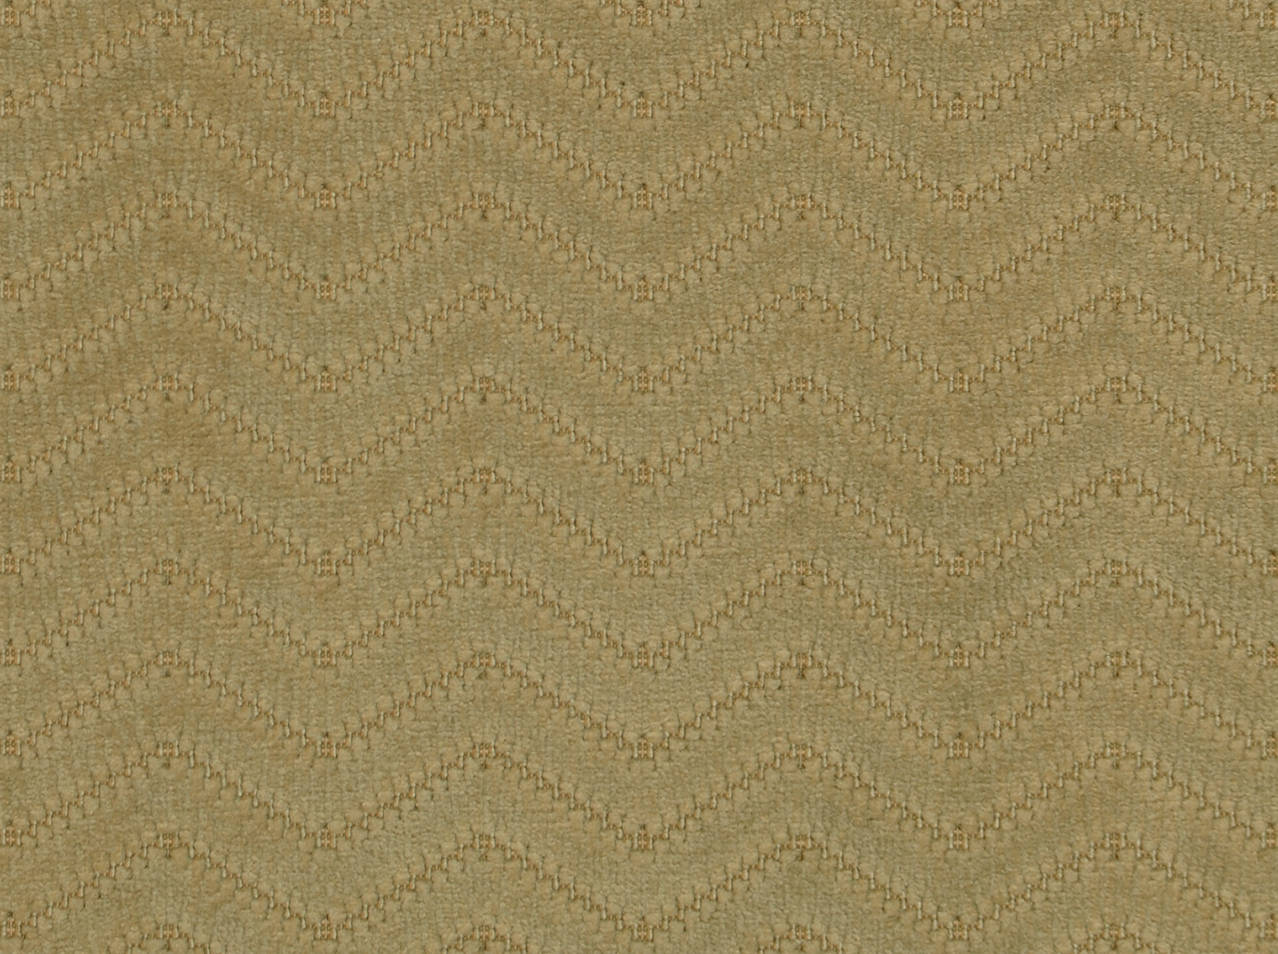 Covington Solids%20and%20Textures Bronx